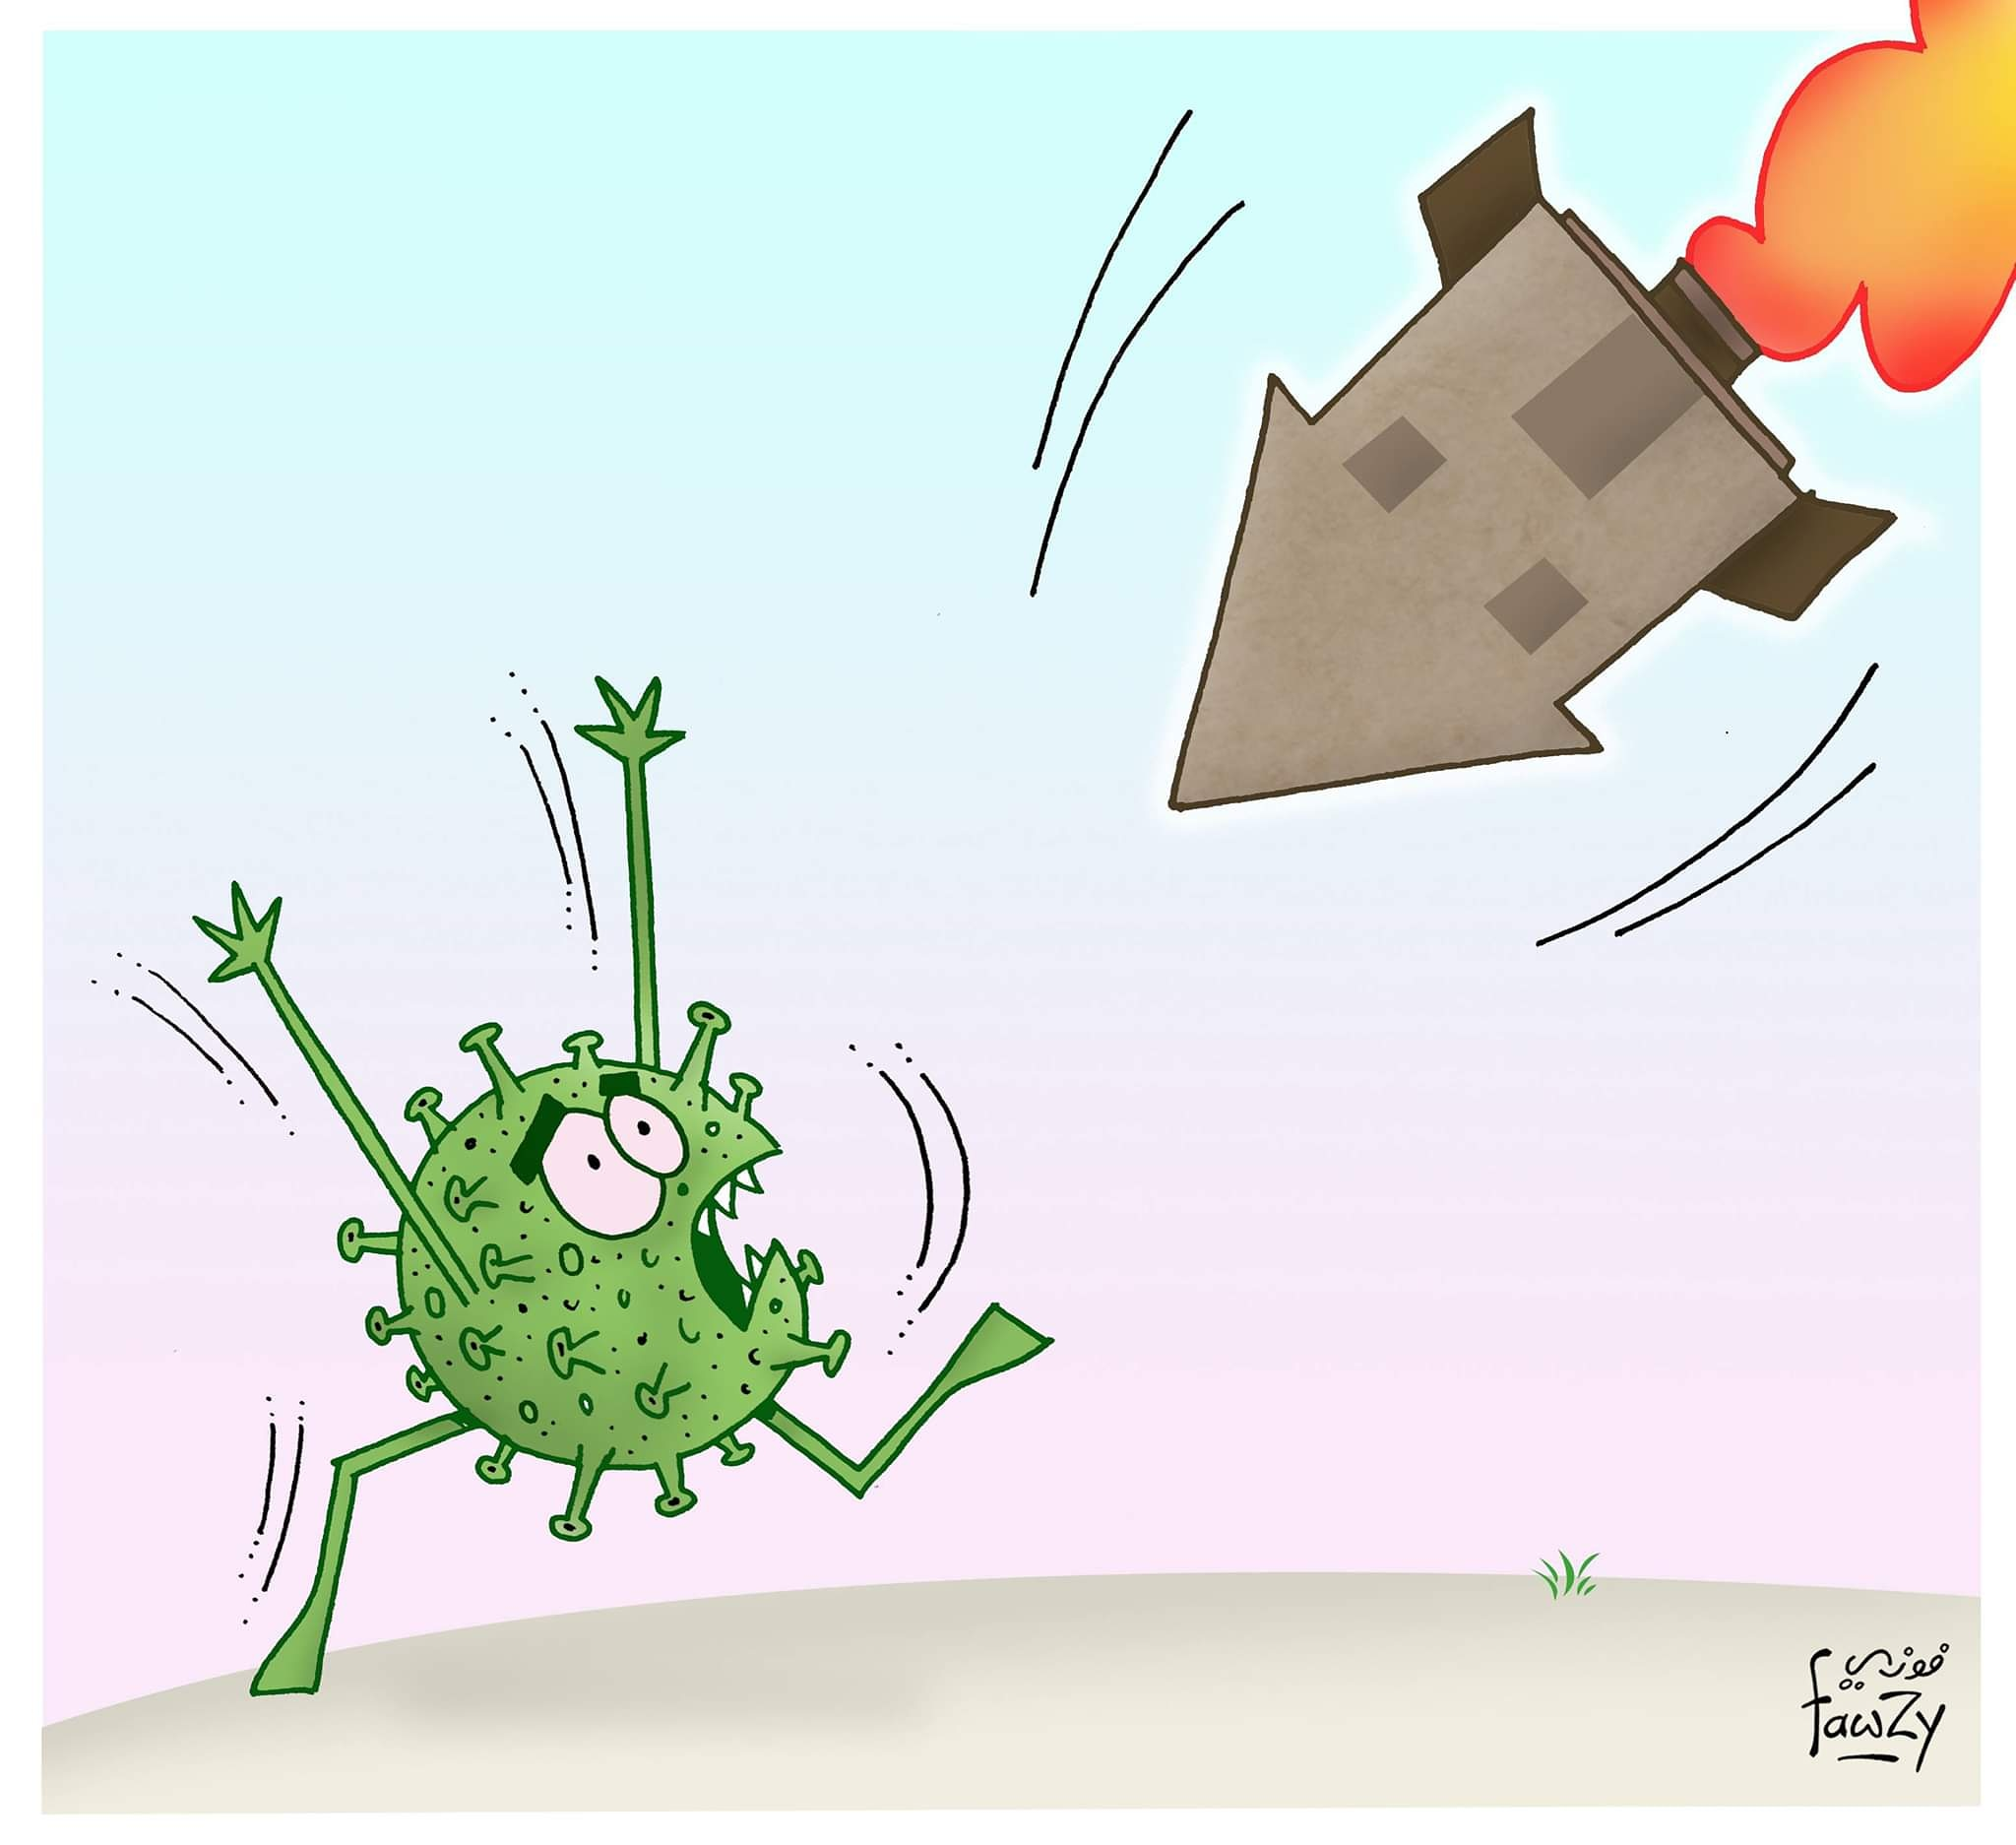 "Editorial Cartoon ""Fight Coronavirus by Staying at Home"" by Fawzy Morsy, Egypt"